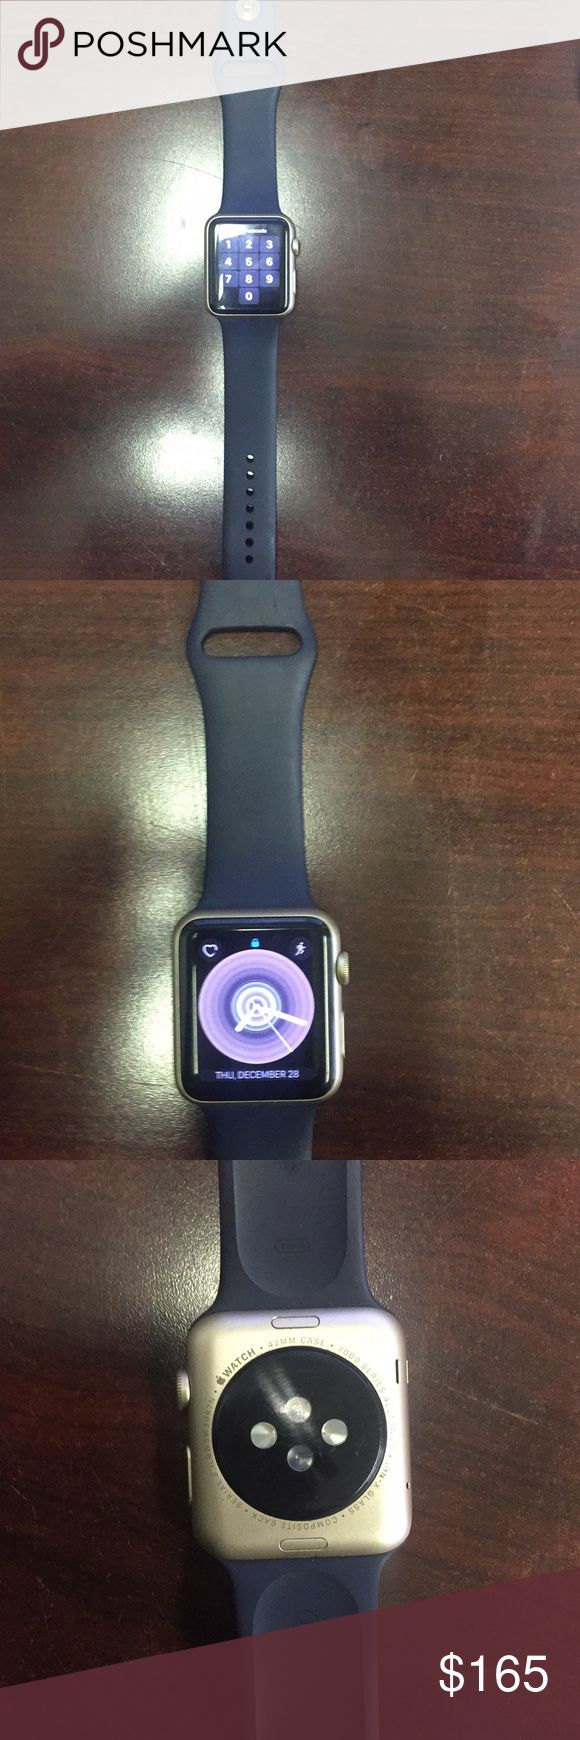 Apple Watch series 1 42mm Great working and physical condition used Apple Watch series 1 with navy blue band and gold casing.  Cleared and reset ready to pair.  Charger and original box included.  42mm in size aluminum.. Great deal & Other Stories Accessories Watches